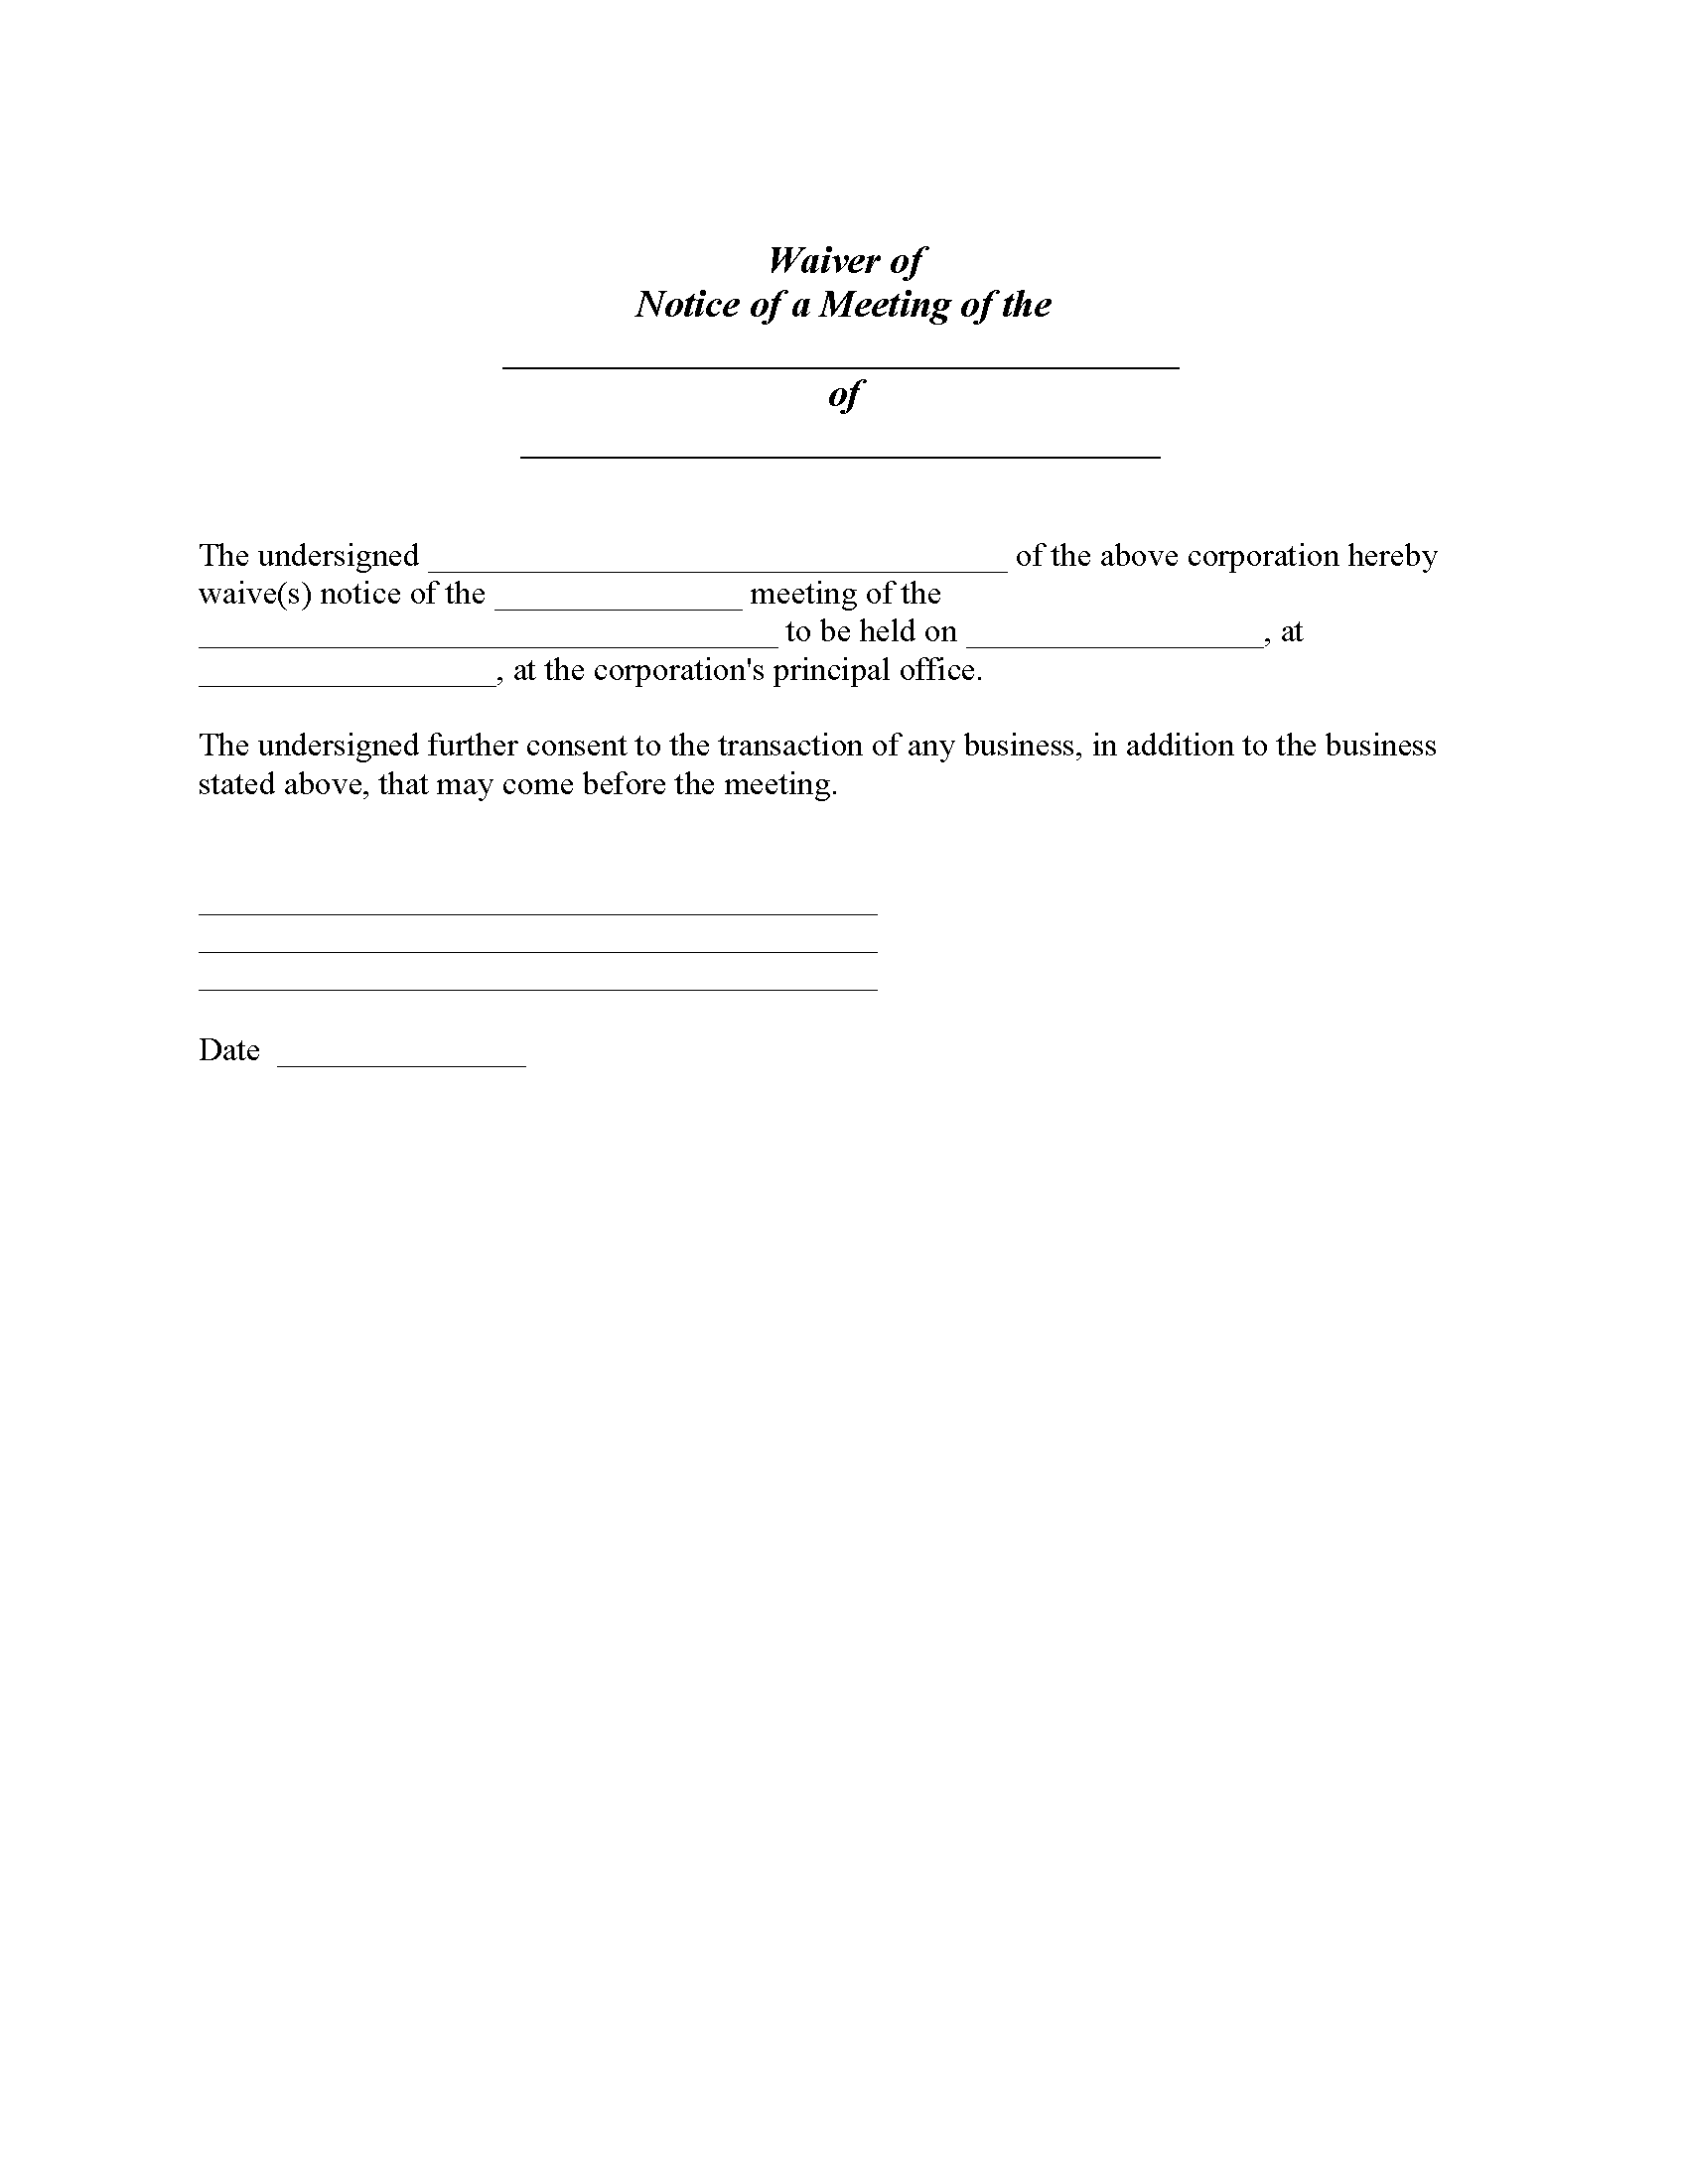 Waiver of Notice of Corporate Meeting Form